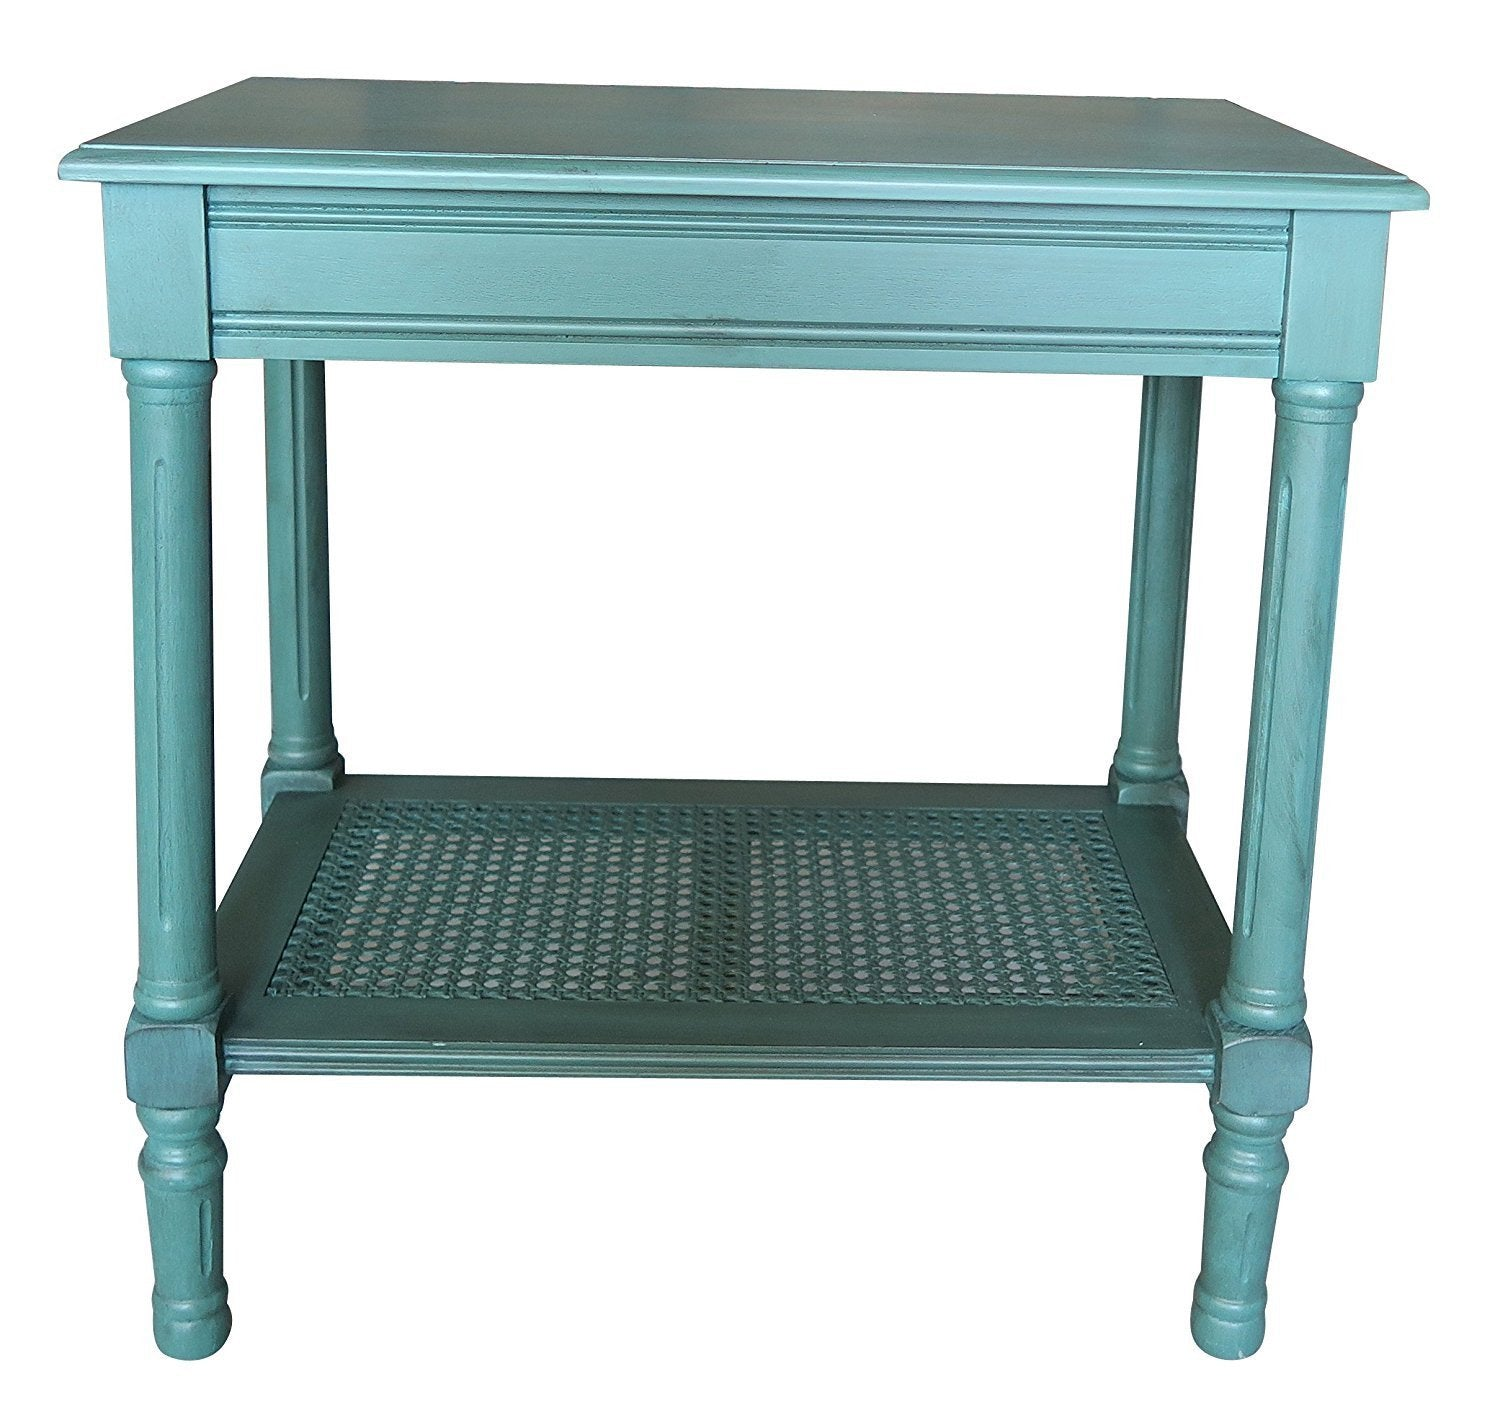 Jamestown Side Table with Rattan Shelf - 6 Finishes